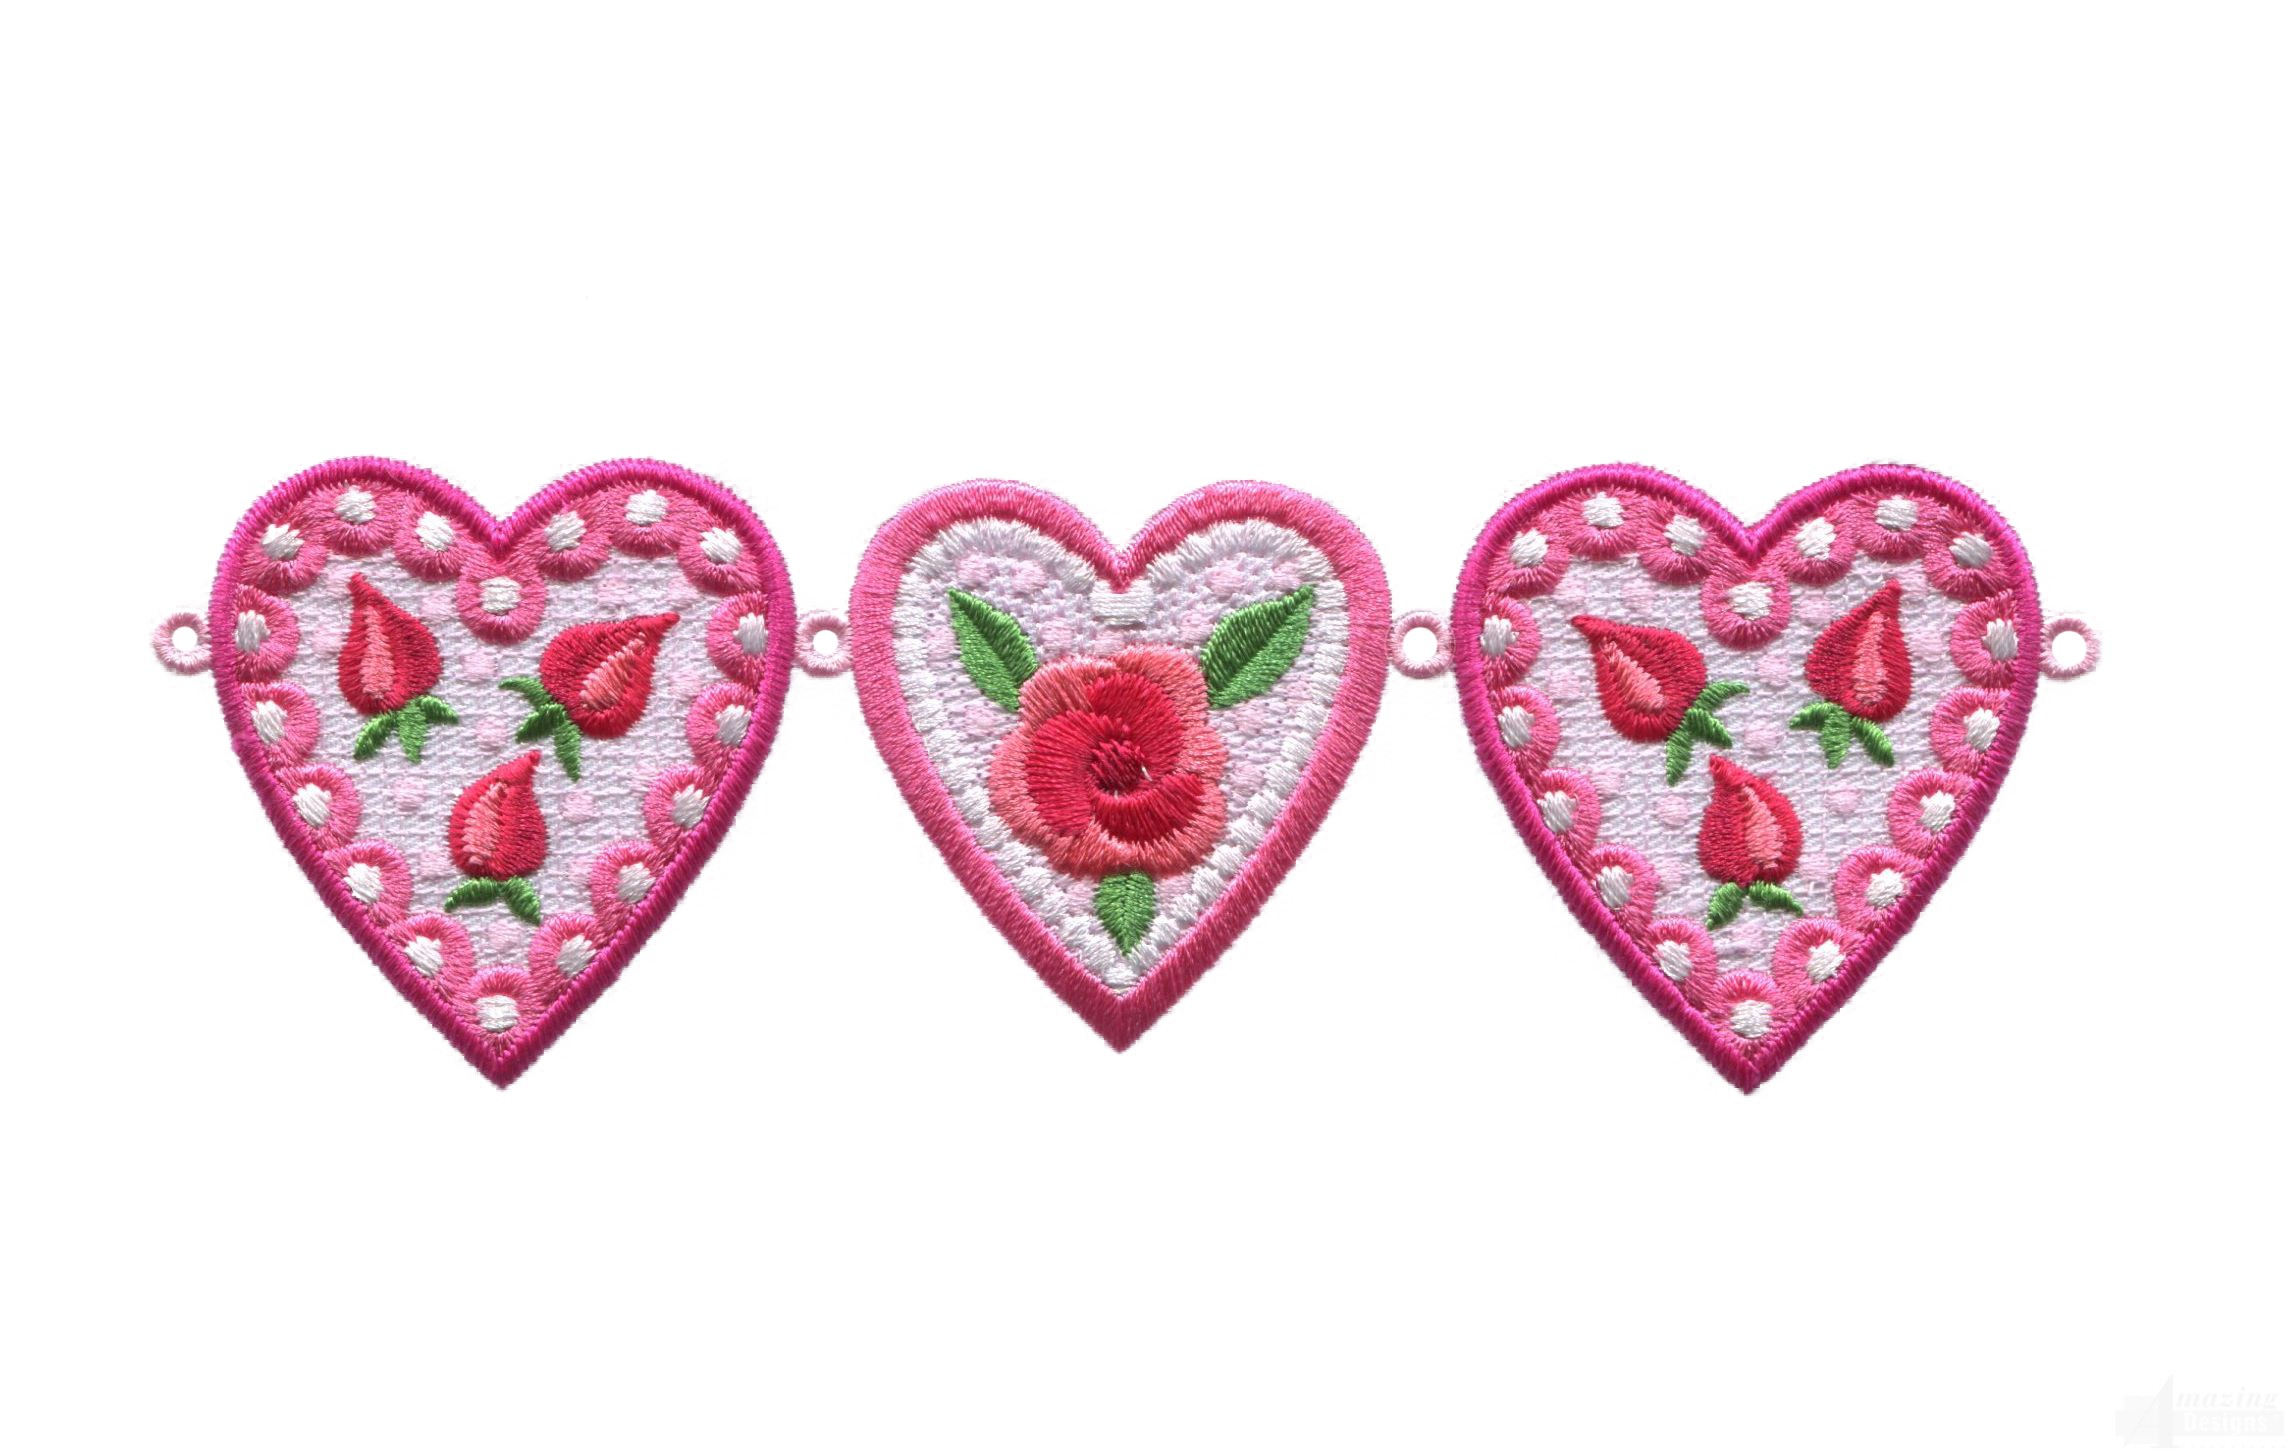 Small heart chain lhrts embroidery design